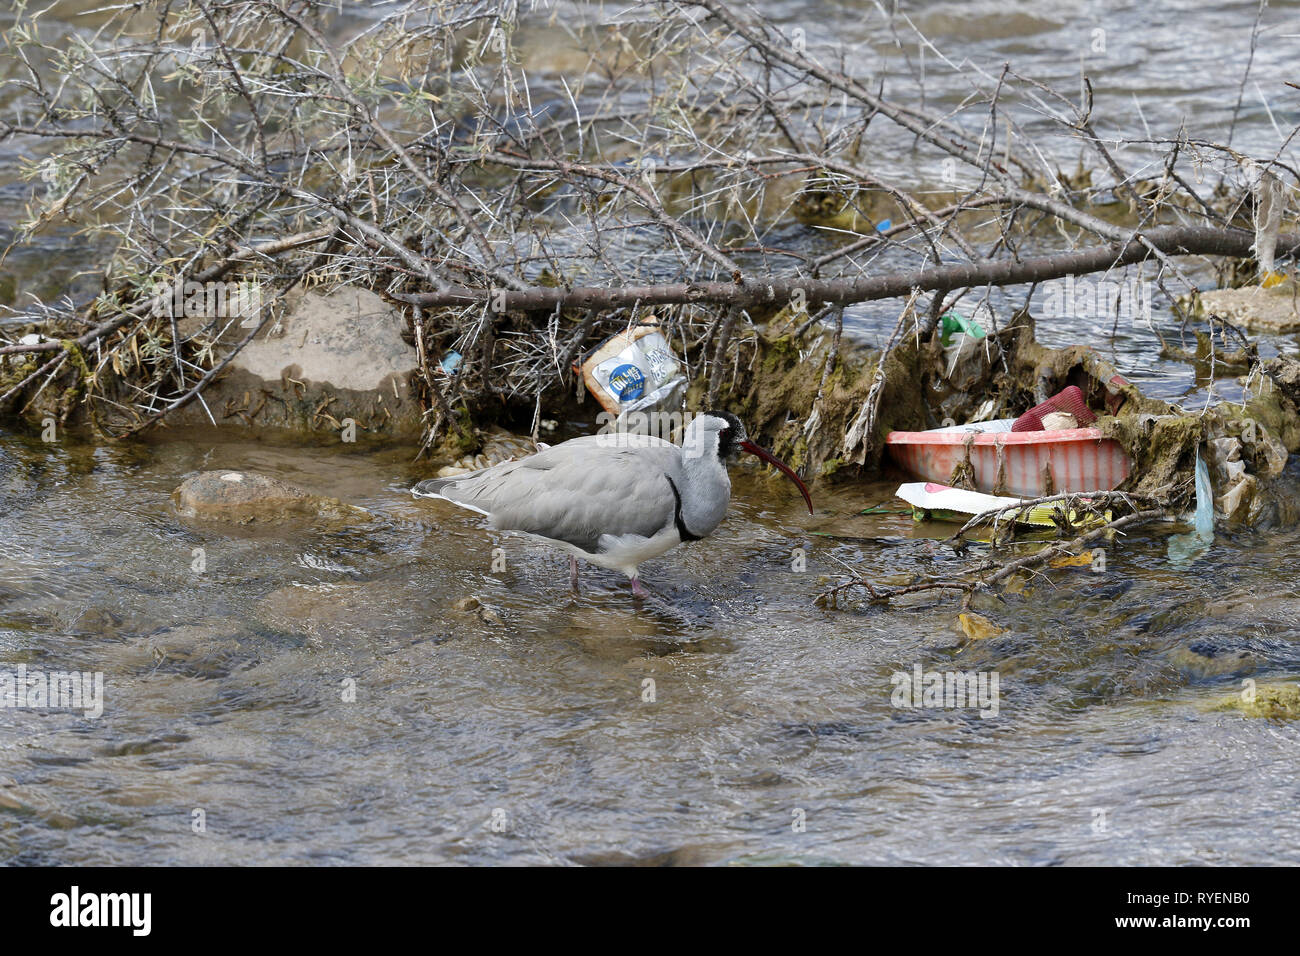 Ibisbill feeding amongst trash - Stock Image